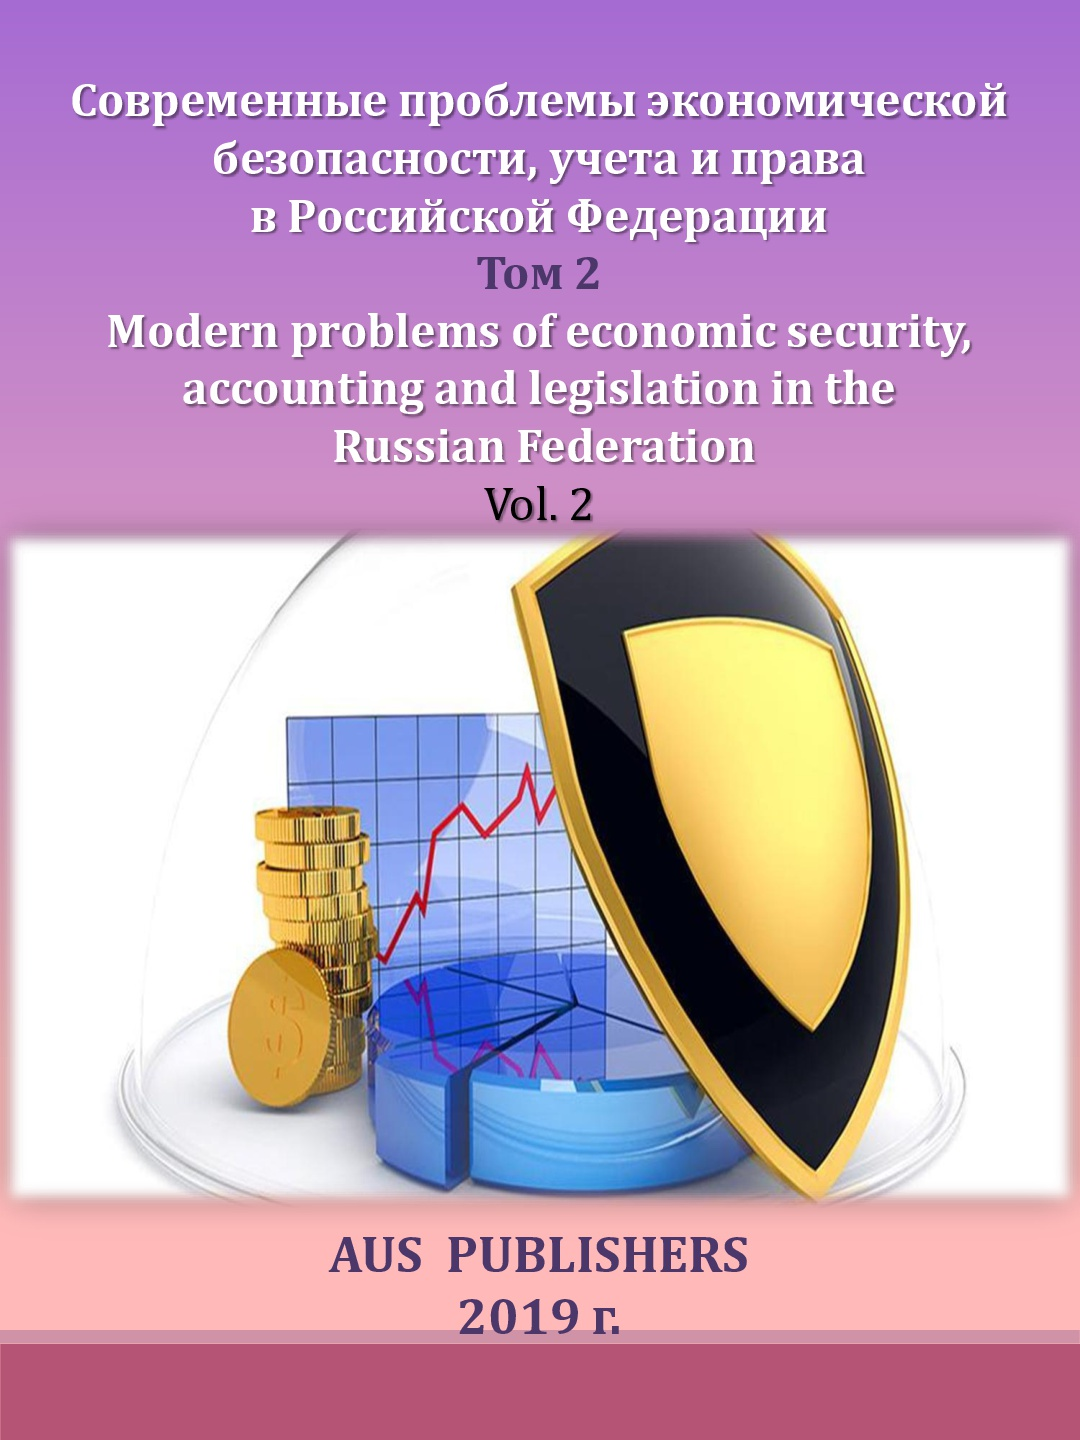 Modern problems of an economic safety, accounting and the right in the Russian Federation. Vol.2